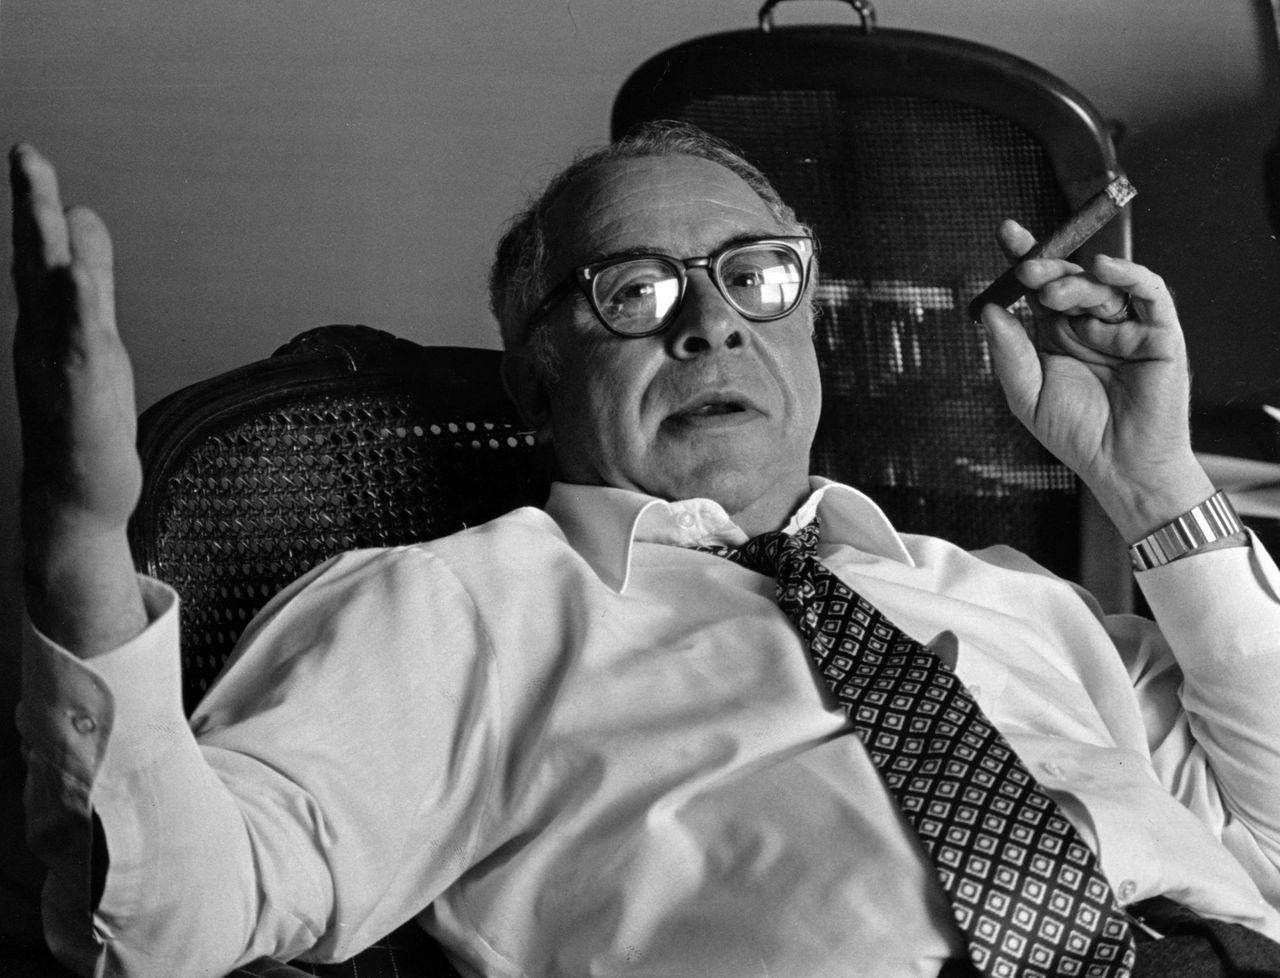 De gisteren overleden columnist Art Buchwald, in 1984 (Foto AP) Columnist Art Buchwald, is seen during interview Oct. 3, 1984, at the St. Louis Marriott Downtown, in St. Louis , Mo. Buchwald, the Pulitzer-Prize winning columnist, made a career out of skewering Washington's elite, then won even wider fame when he chose to let himself die rather than fight for every ounce of life. Now he has had the last laugh. Buchwald died of kidney failure at home Wednesday, Jan. 17, 2007, surrounded by family, nearly a year after he stunned them by rejecting medical treatments aimed at keeping him alive. (AP Photo/St. Louis Post Dispatch) ** NO MAGS NO SALES NO TV SLOUT **